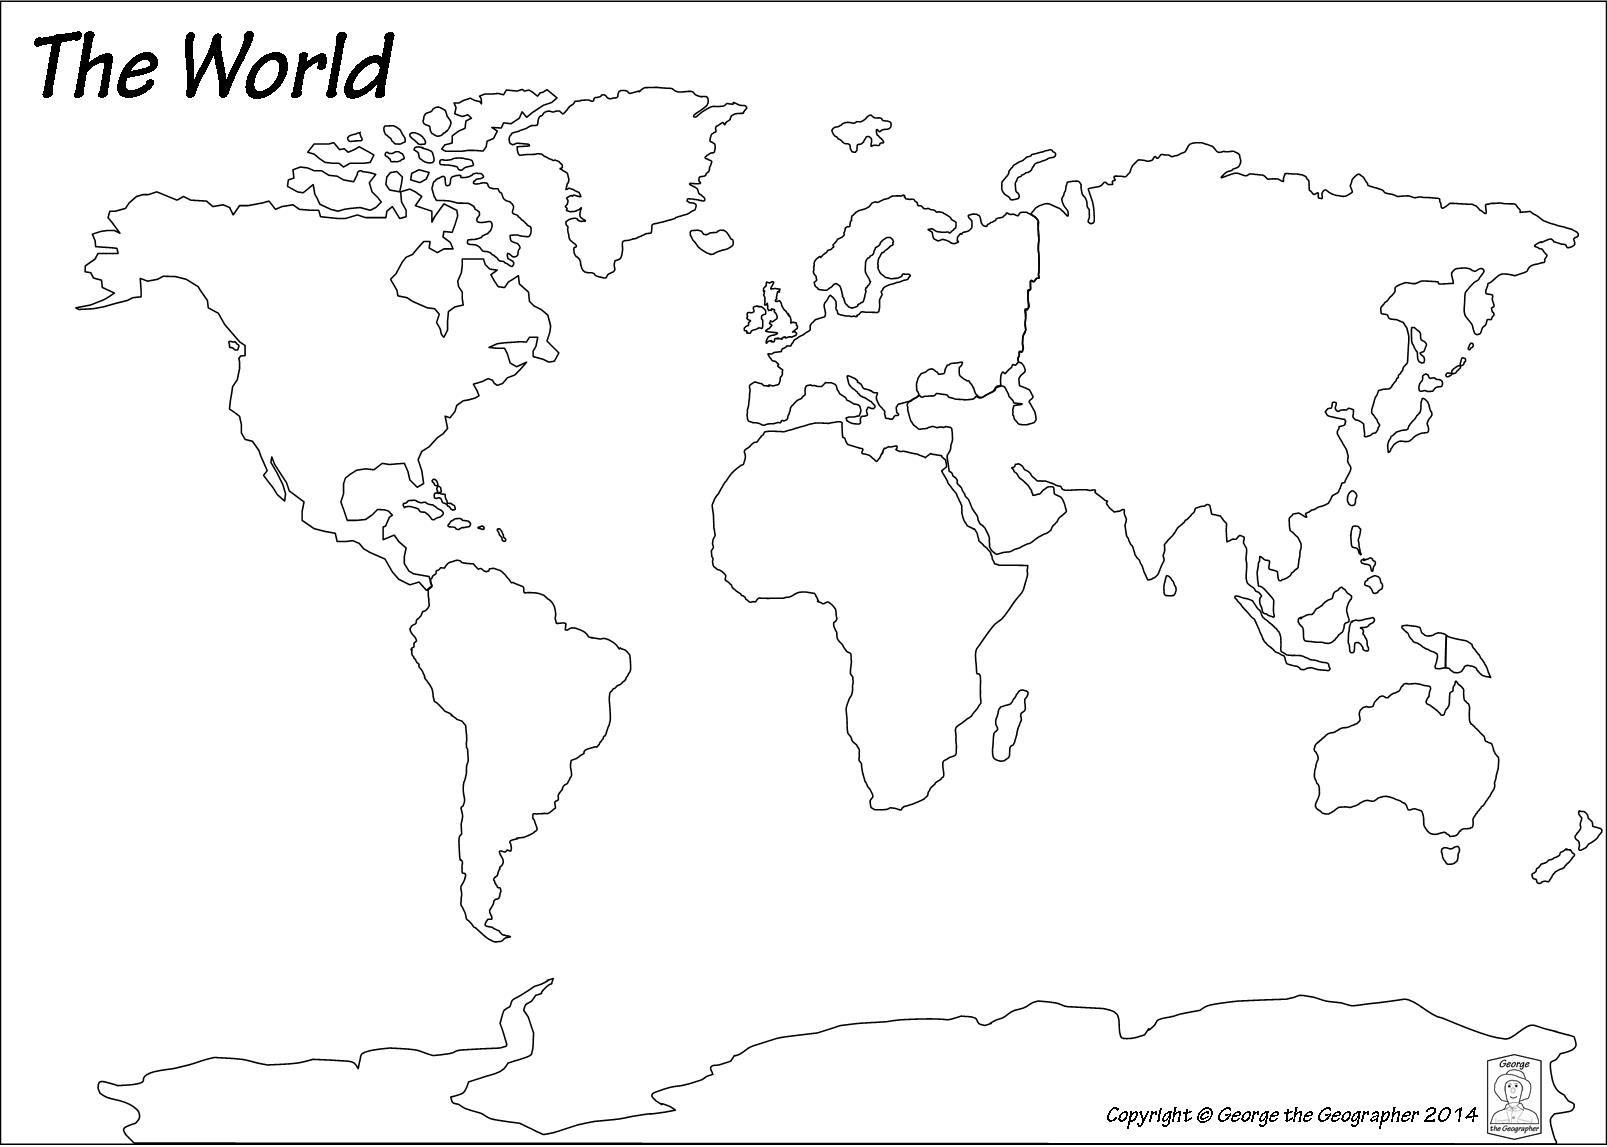 Universal image pertaining to world map black and white printable